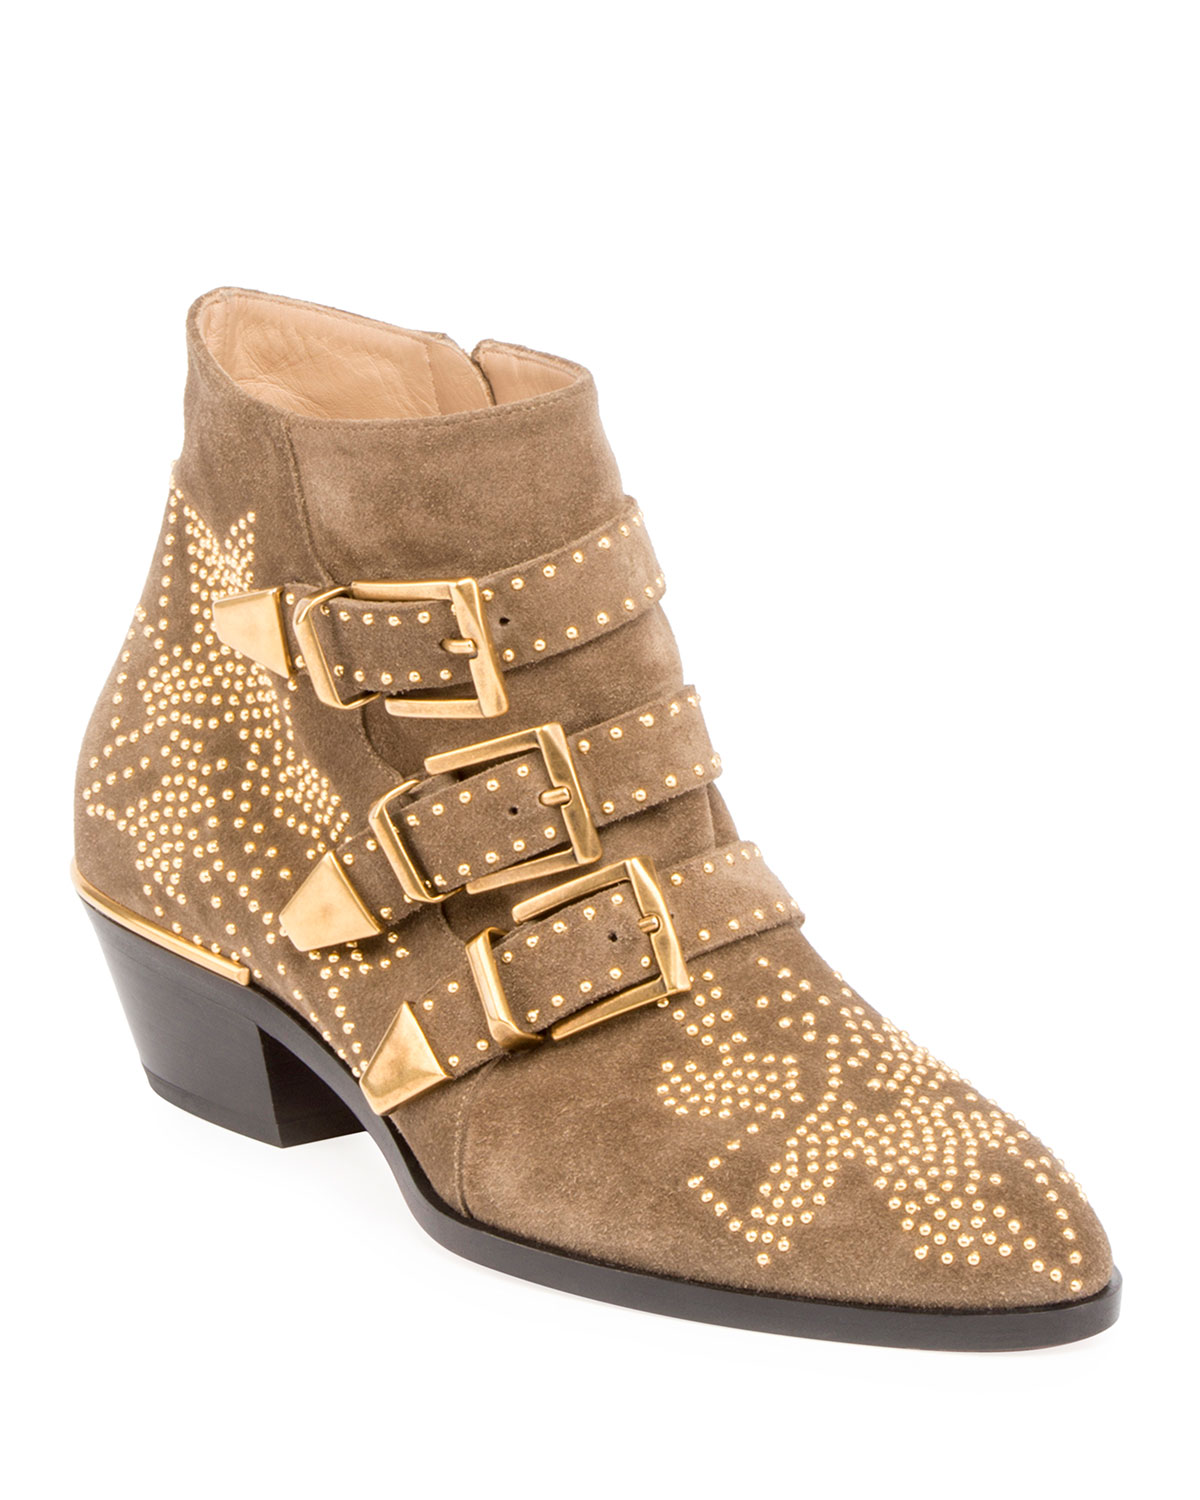 4446cc4b40d6 Chloe Suzanna Studded Suede Buckle Bootie